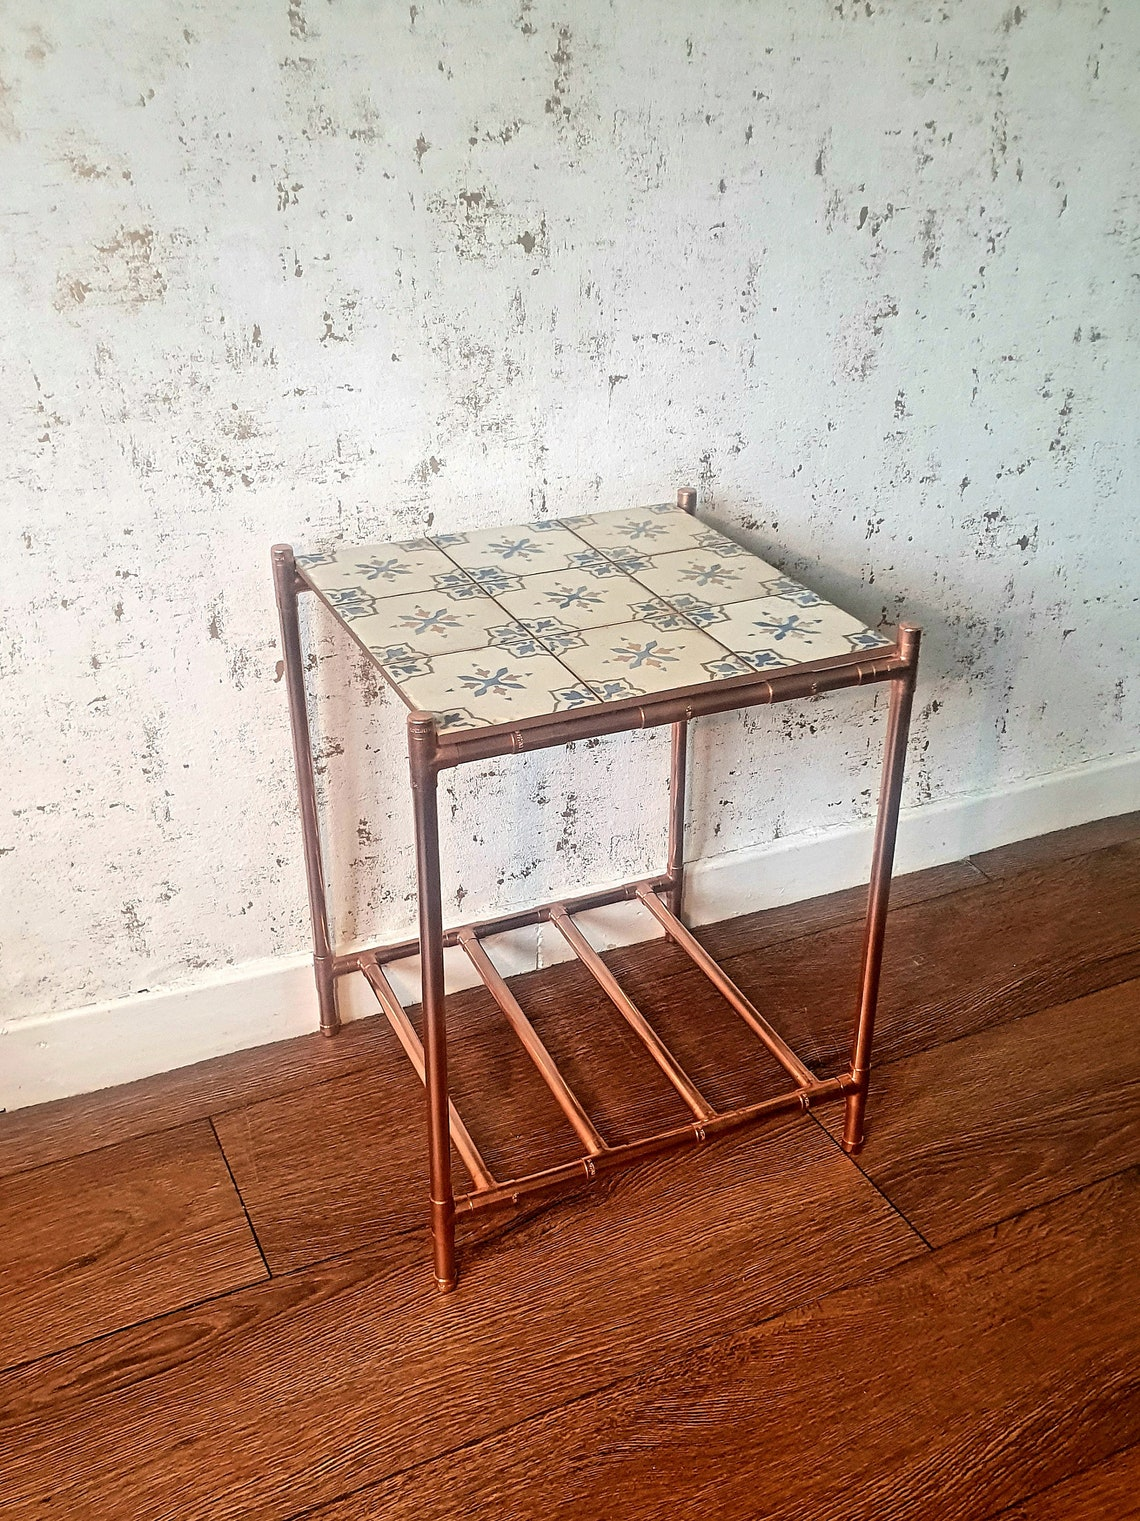 Copper Industrial Coffee / Side Table with a vintage cream, blue & orange floral patterned ceramic tile